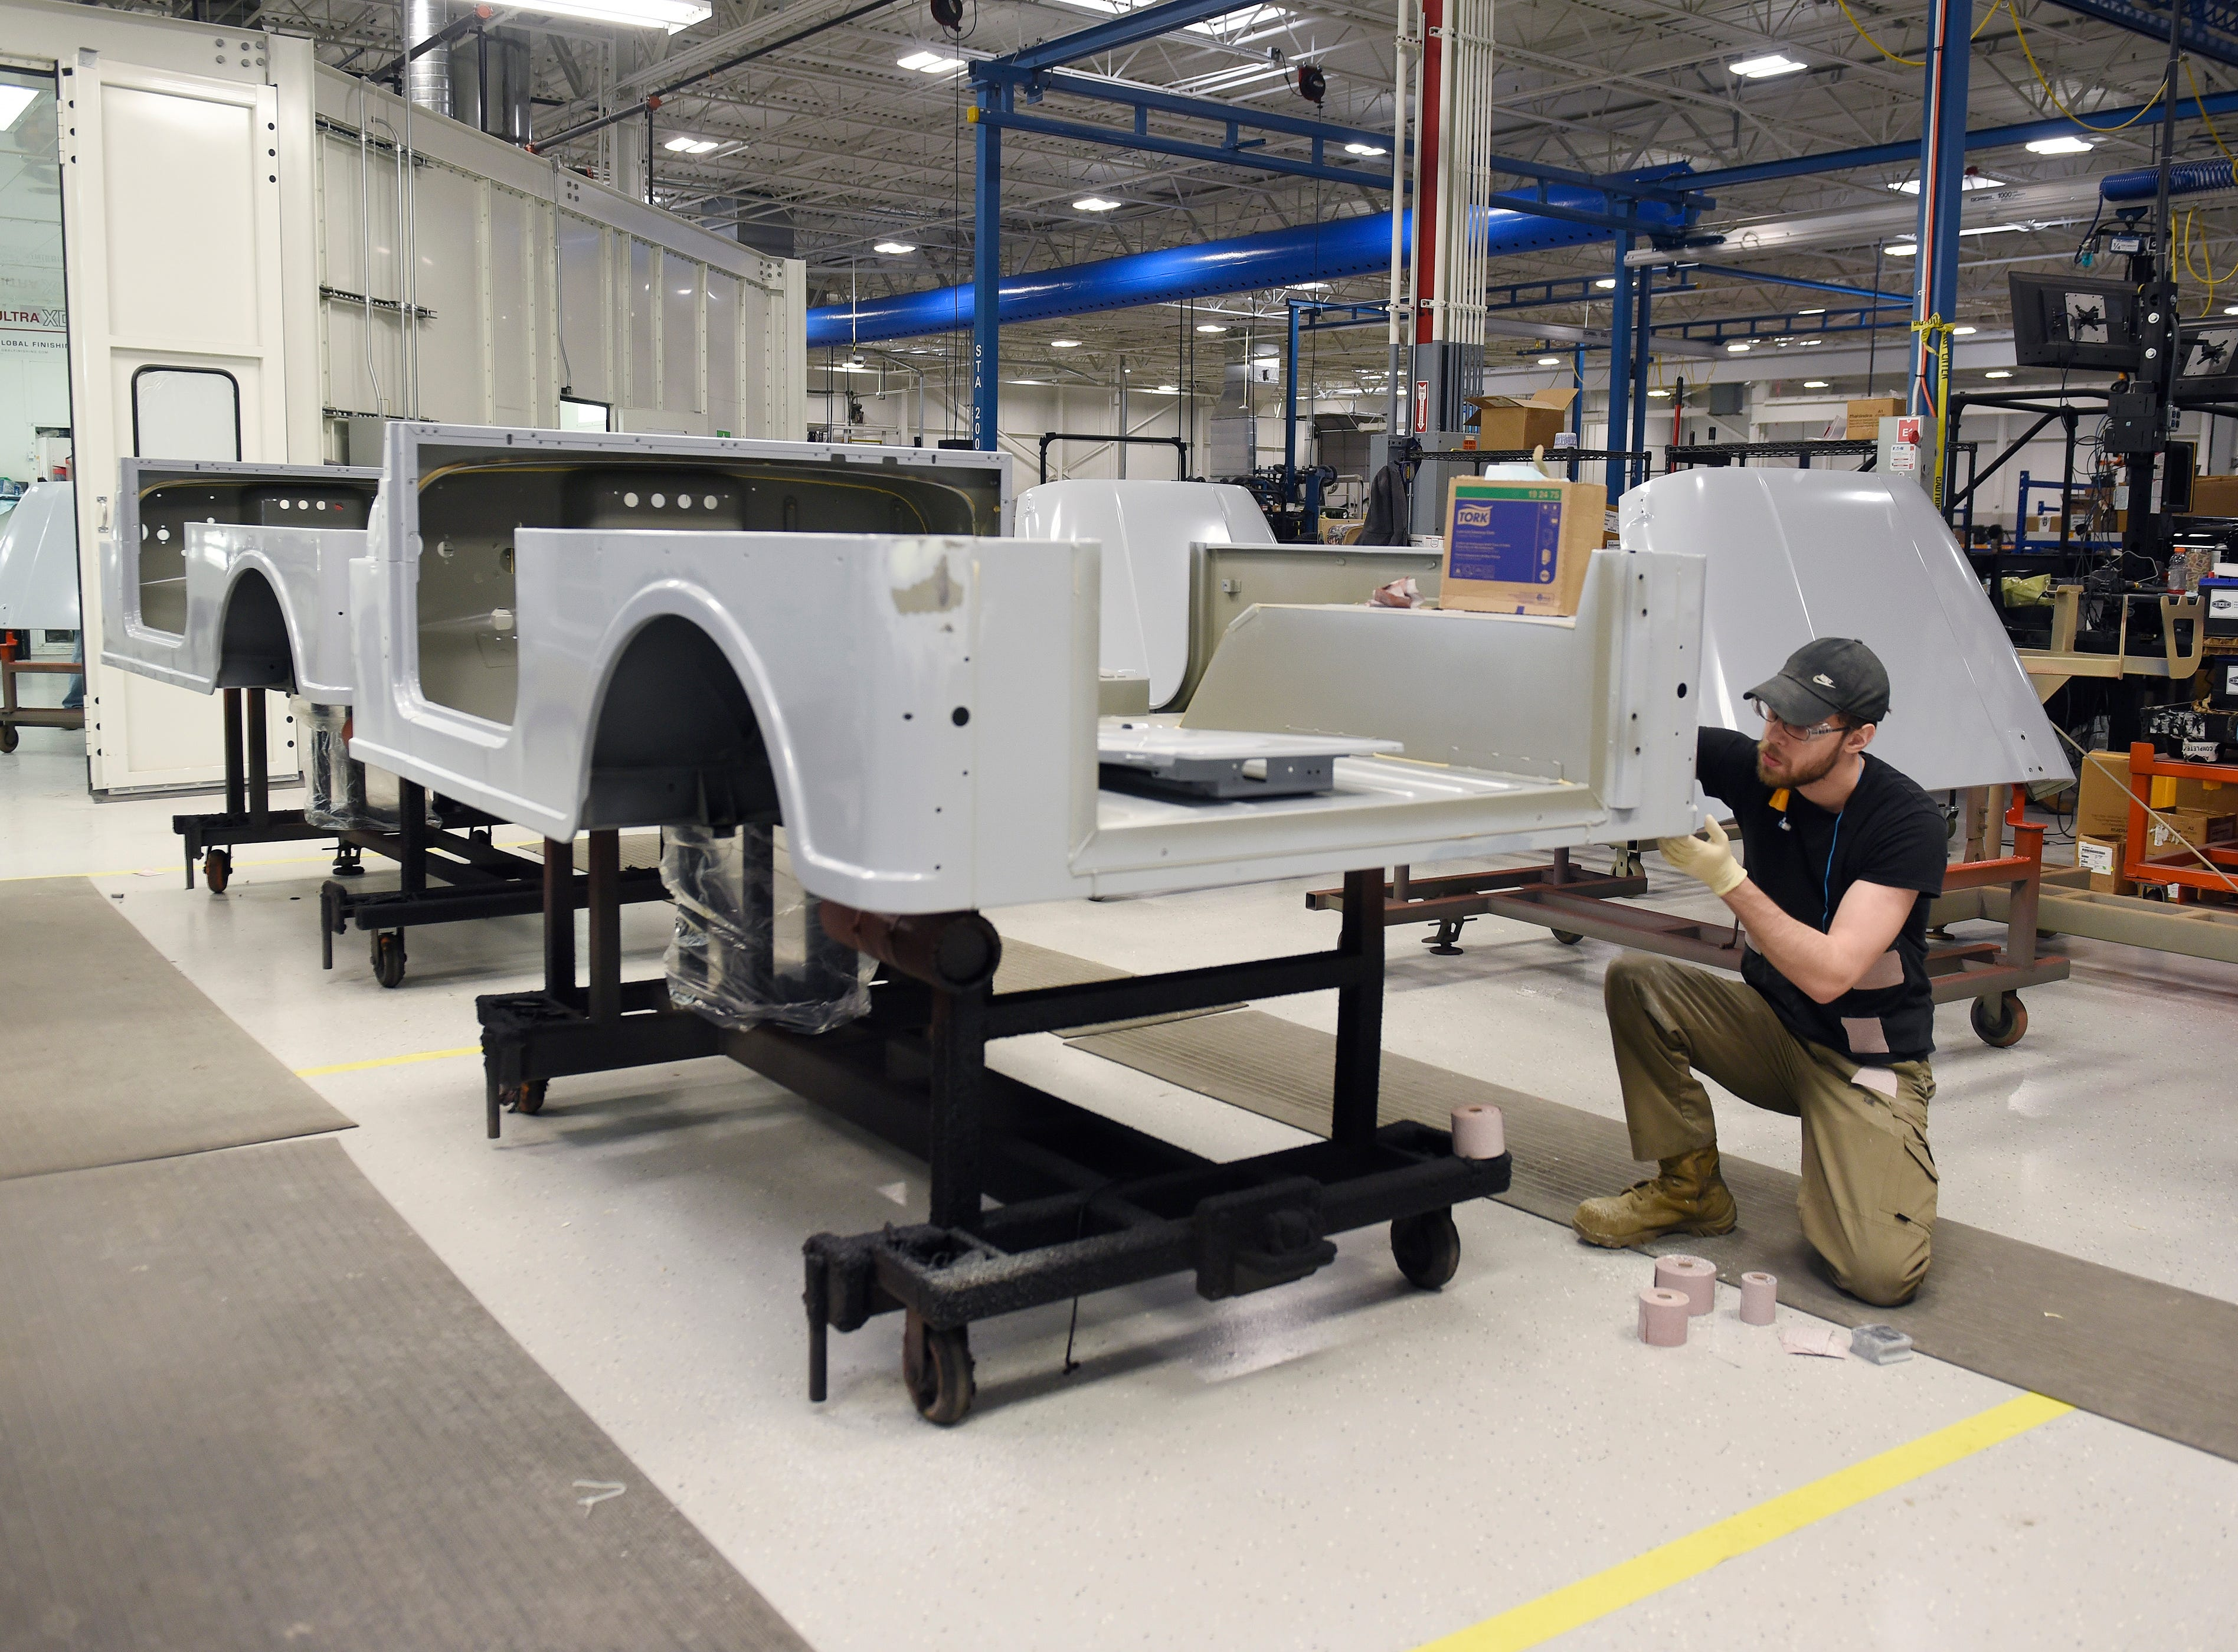 Christopher Pope, 26, sands a frame in preparation for painting at the Mahindra automotive plant in Auburn Hills, March 4, 2019.